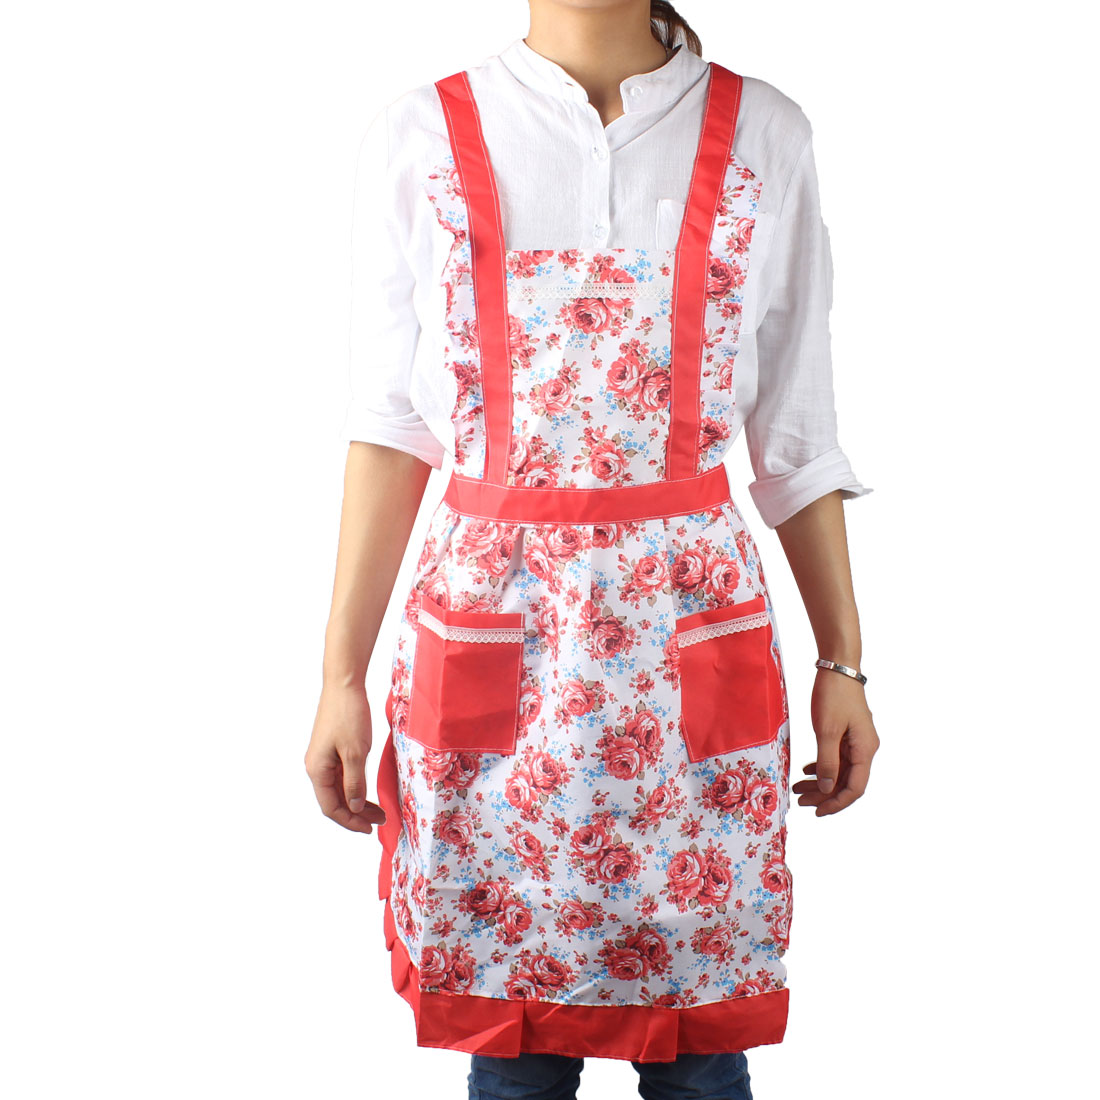 Kitchen Cooking Fabric Blooming Rose Print 2 Front Pocket Self Tie Bib Aprons Red